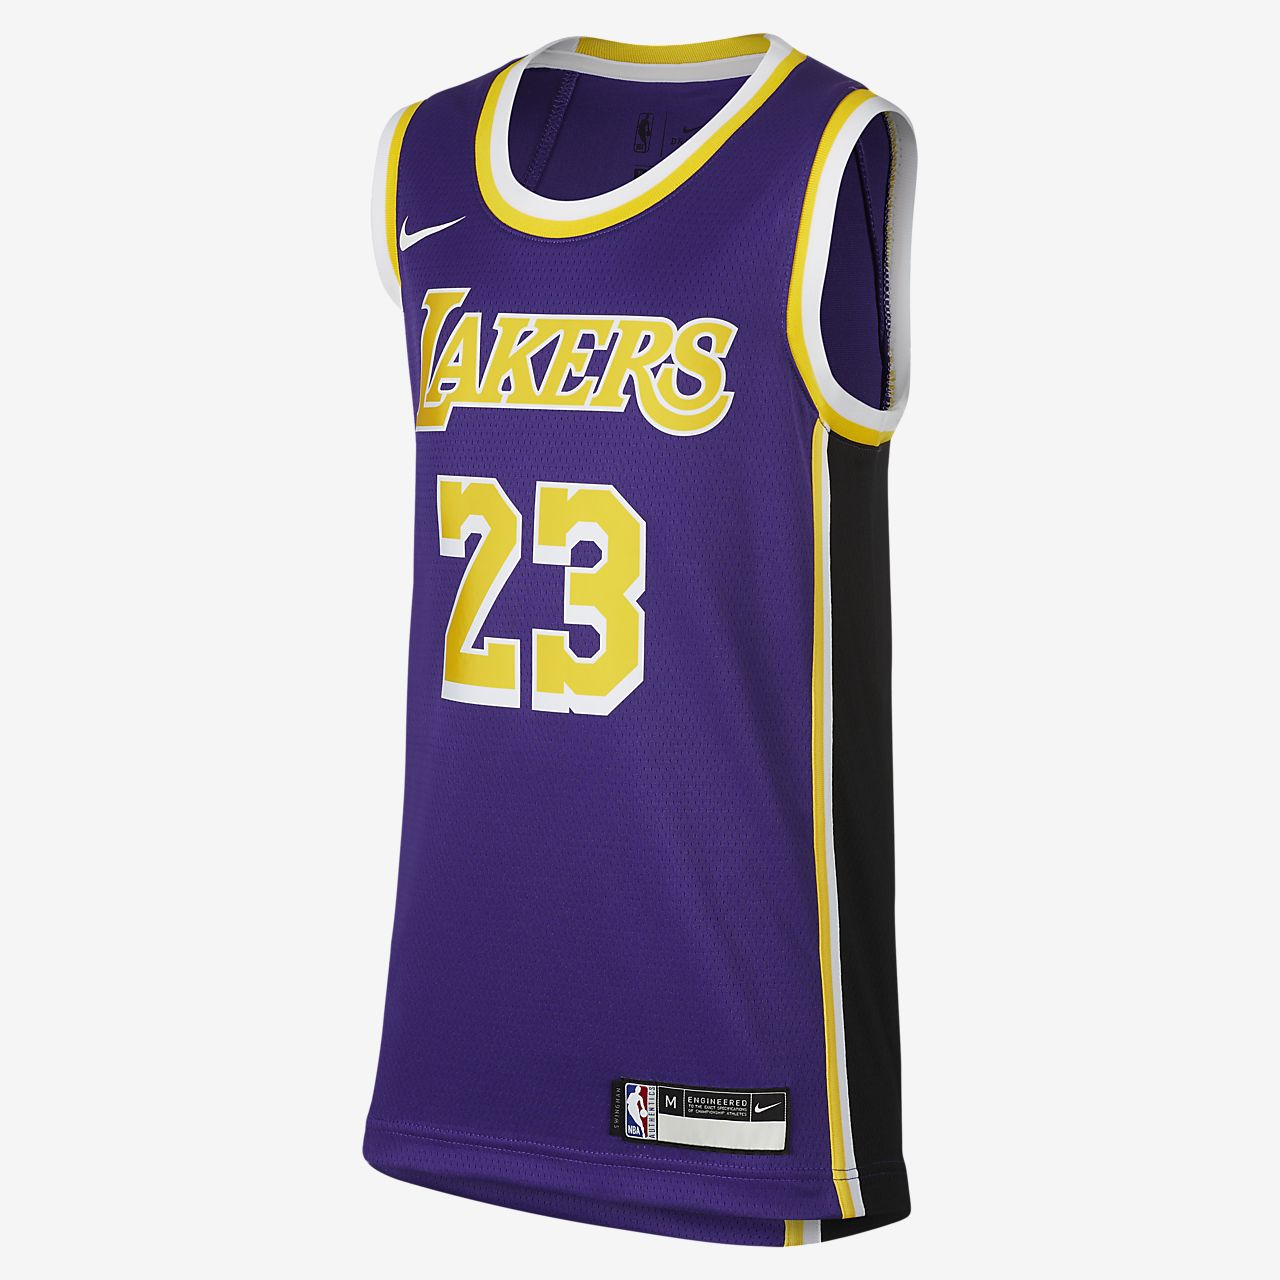 洛杉矶湖人队 Statement Edition Swingman Nike NBA Jersey 大童 (男孩)球衣